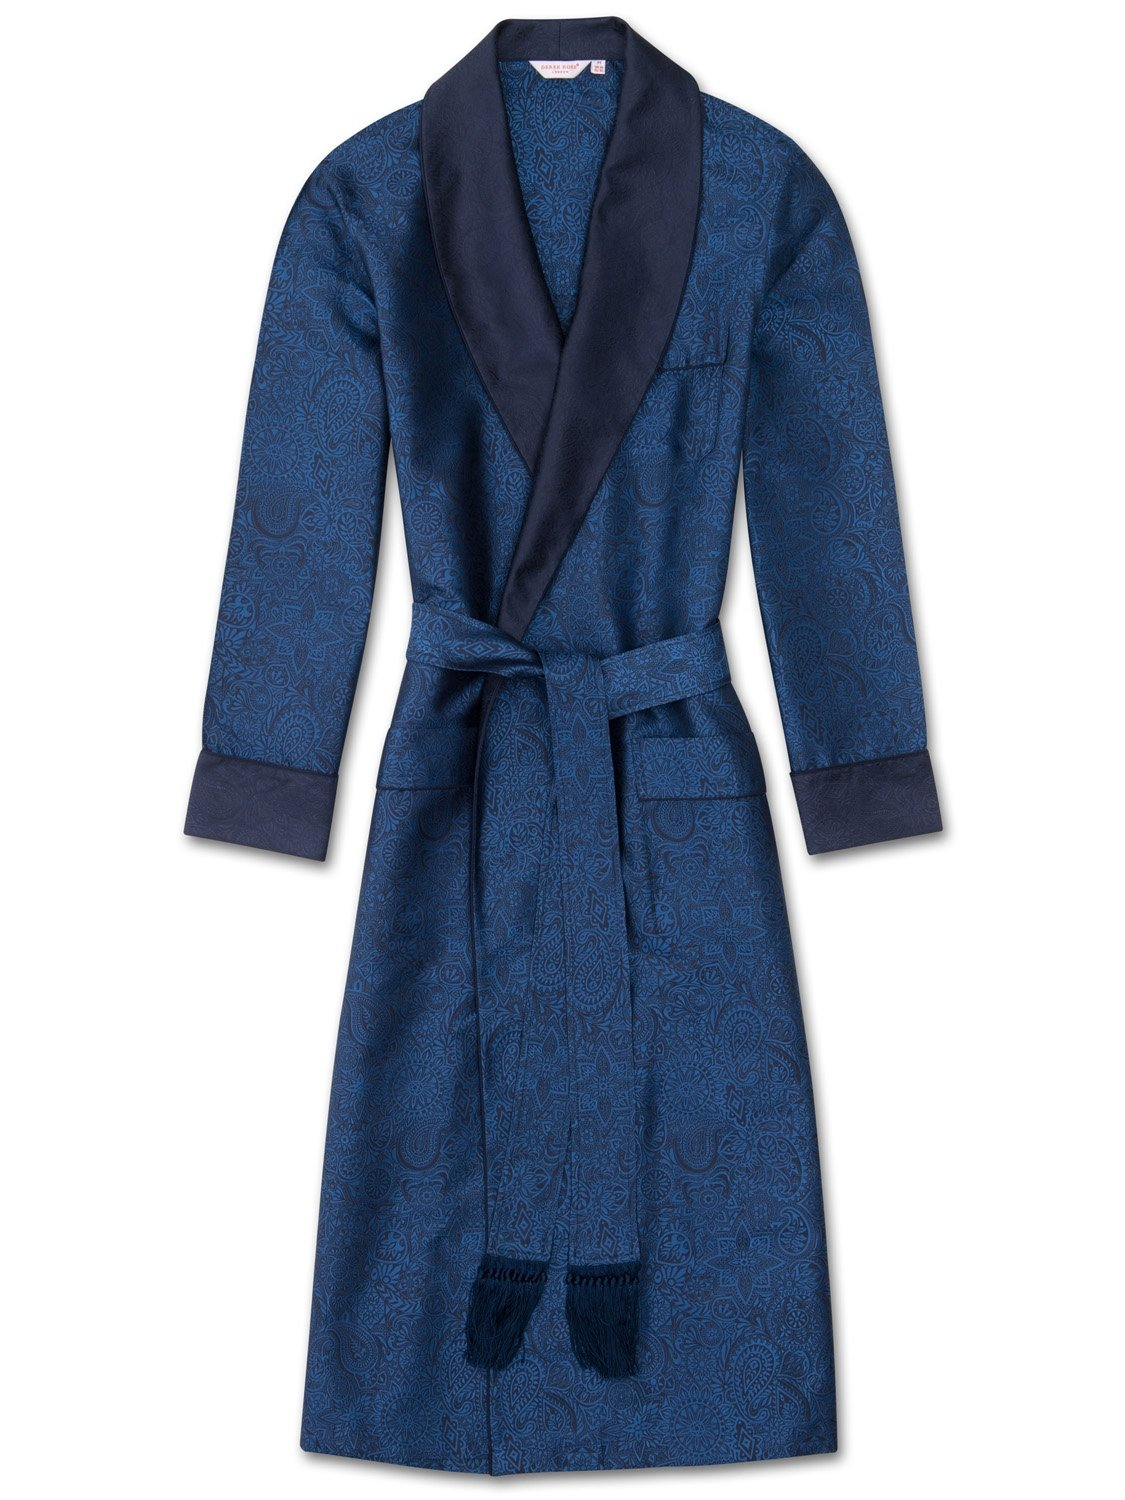 Men's Tasseled Belt Dressing Gown Verona 40 Pure Silk Jacquard Blue